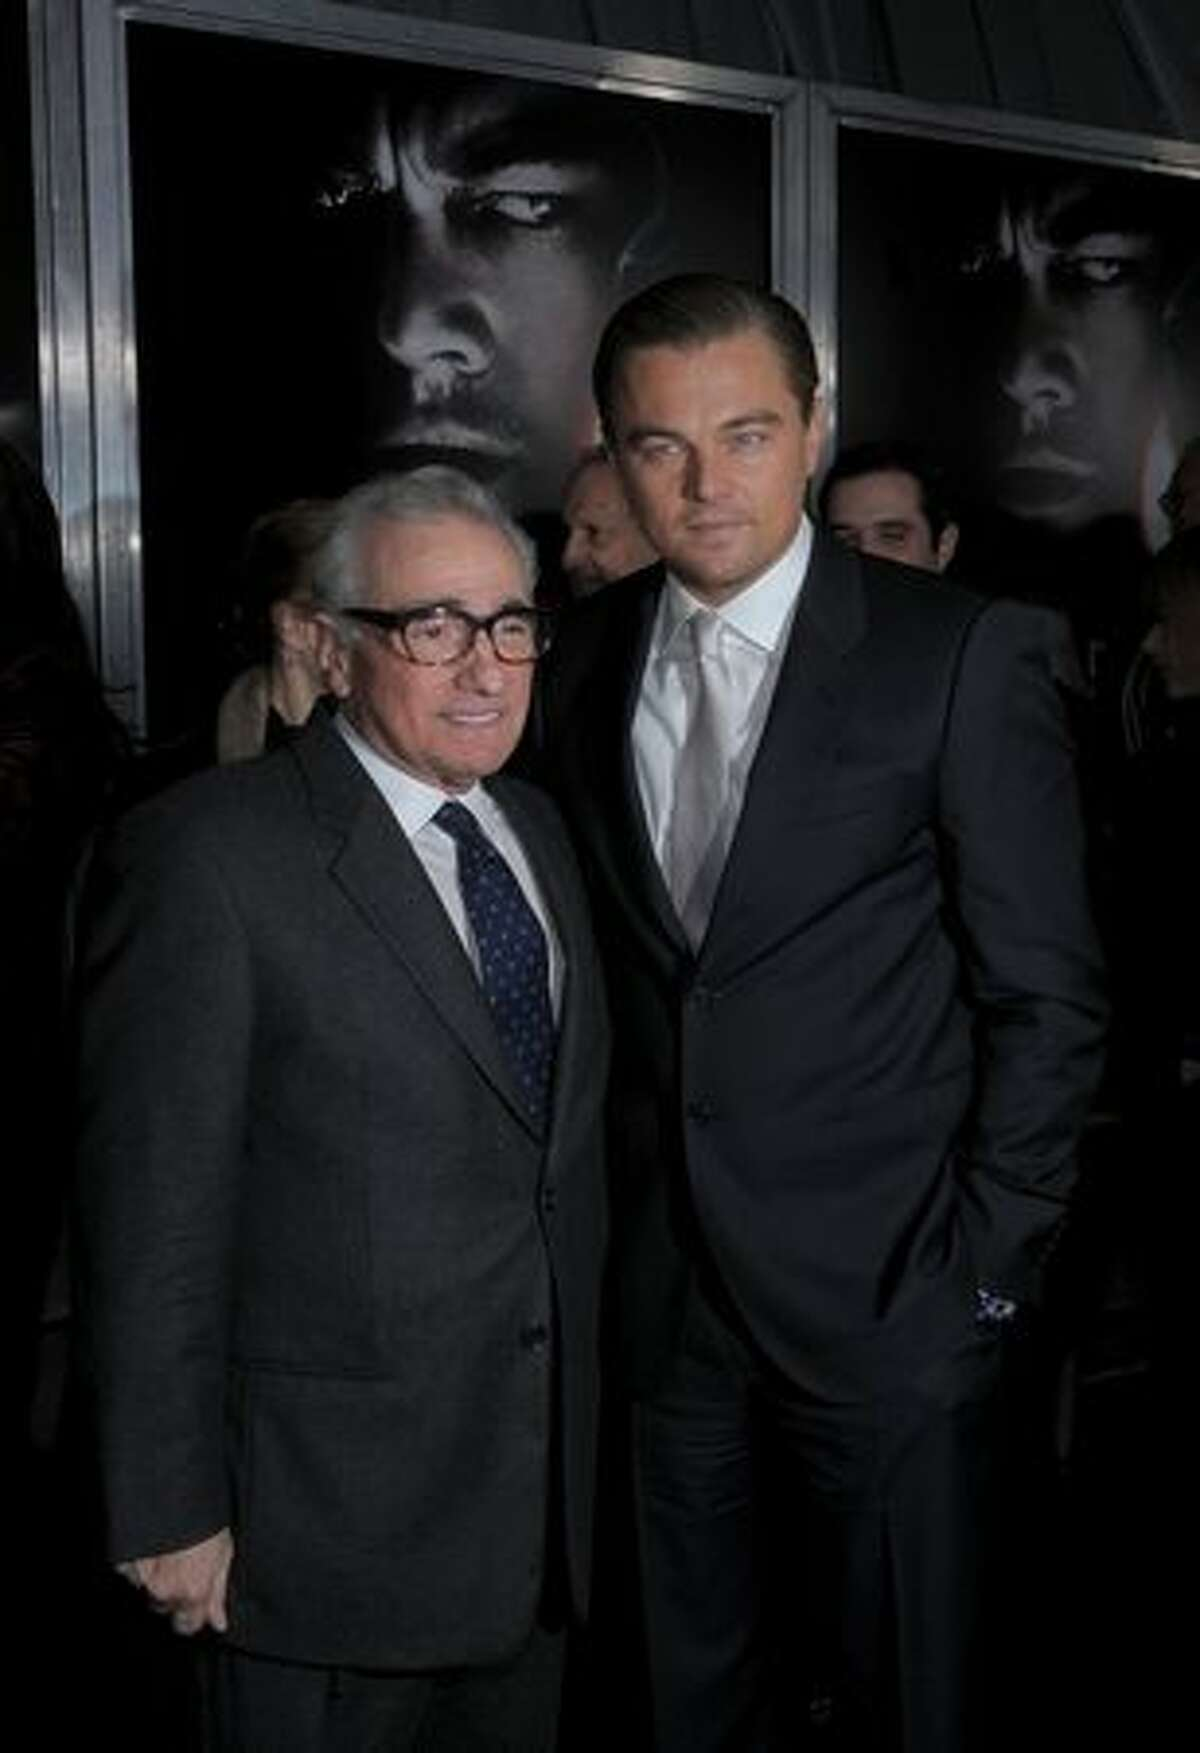 Director and producer Martin Scorsese and actor Leonardo DiCaprio attend the